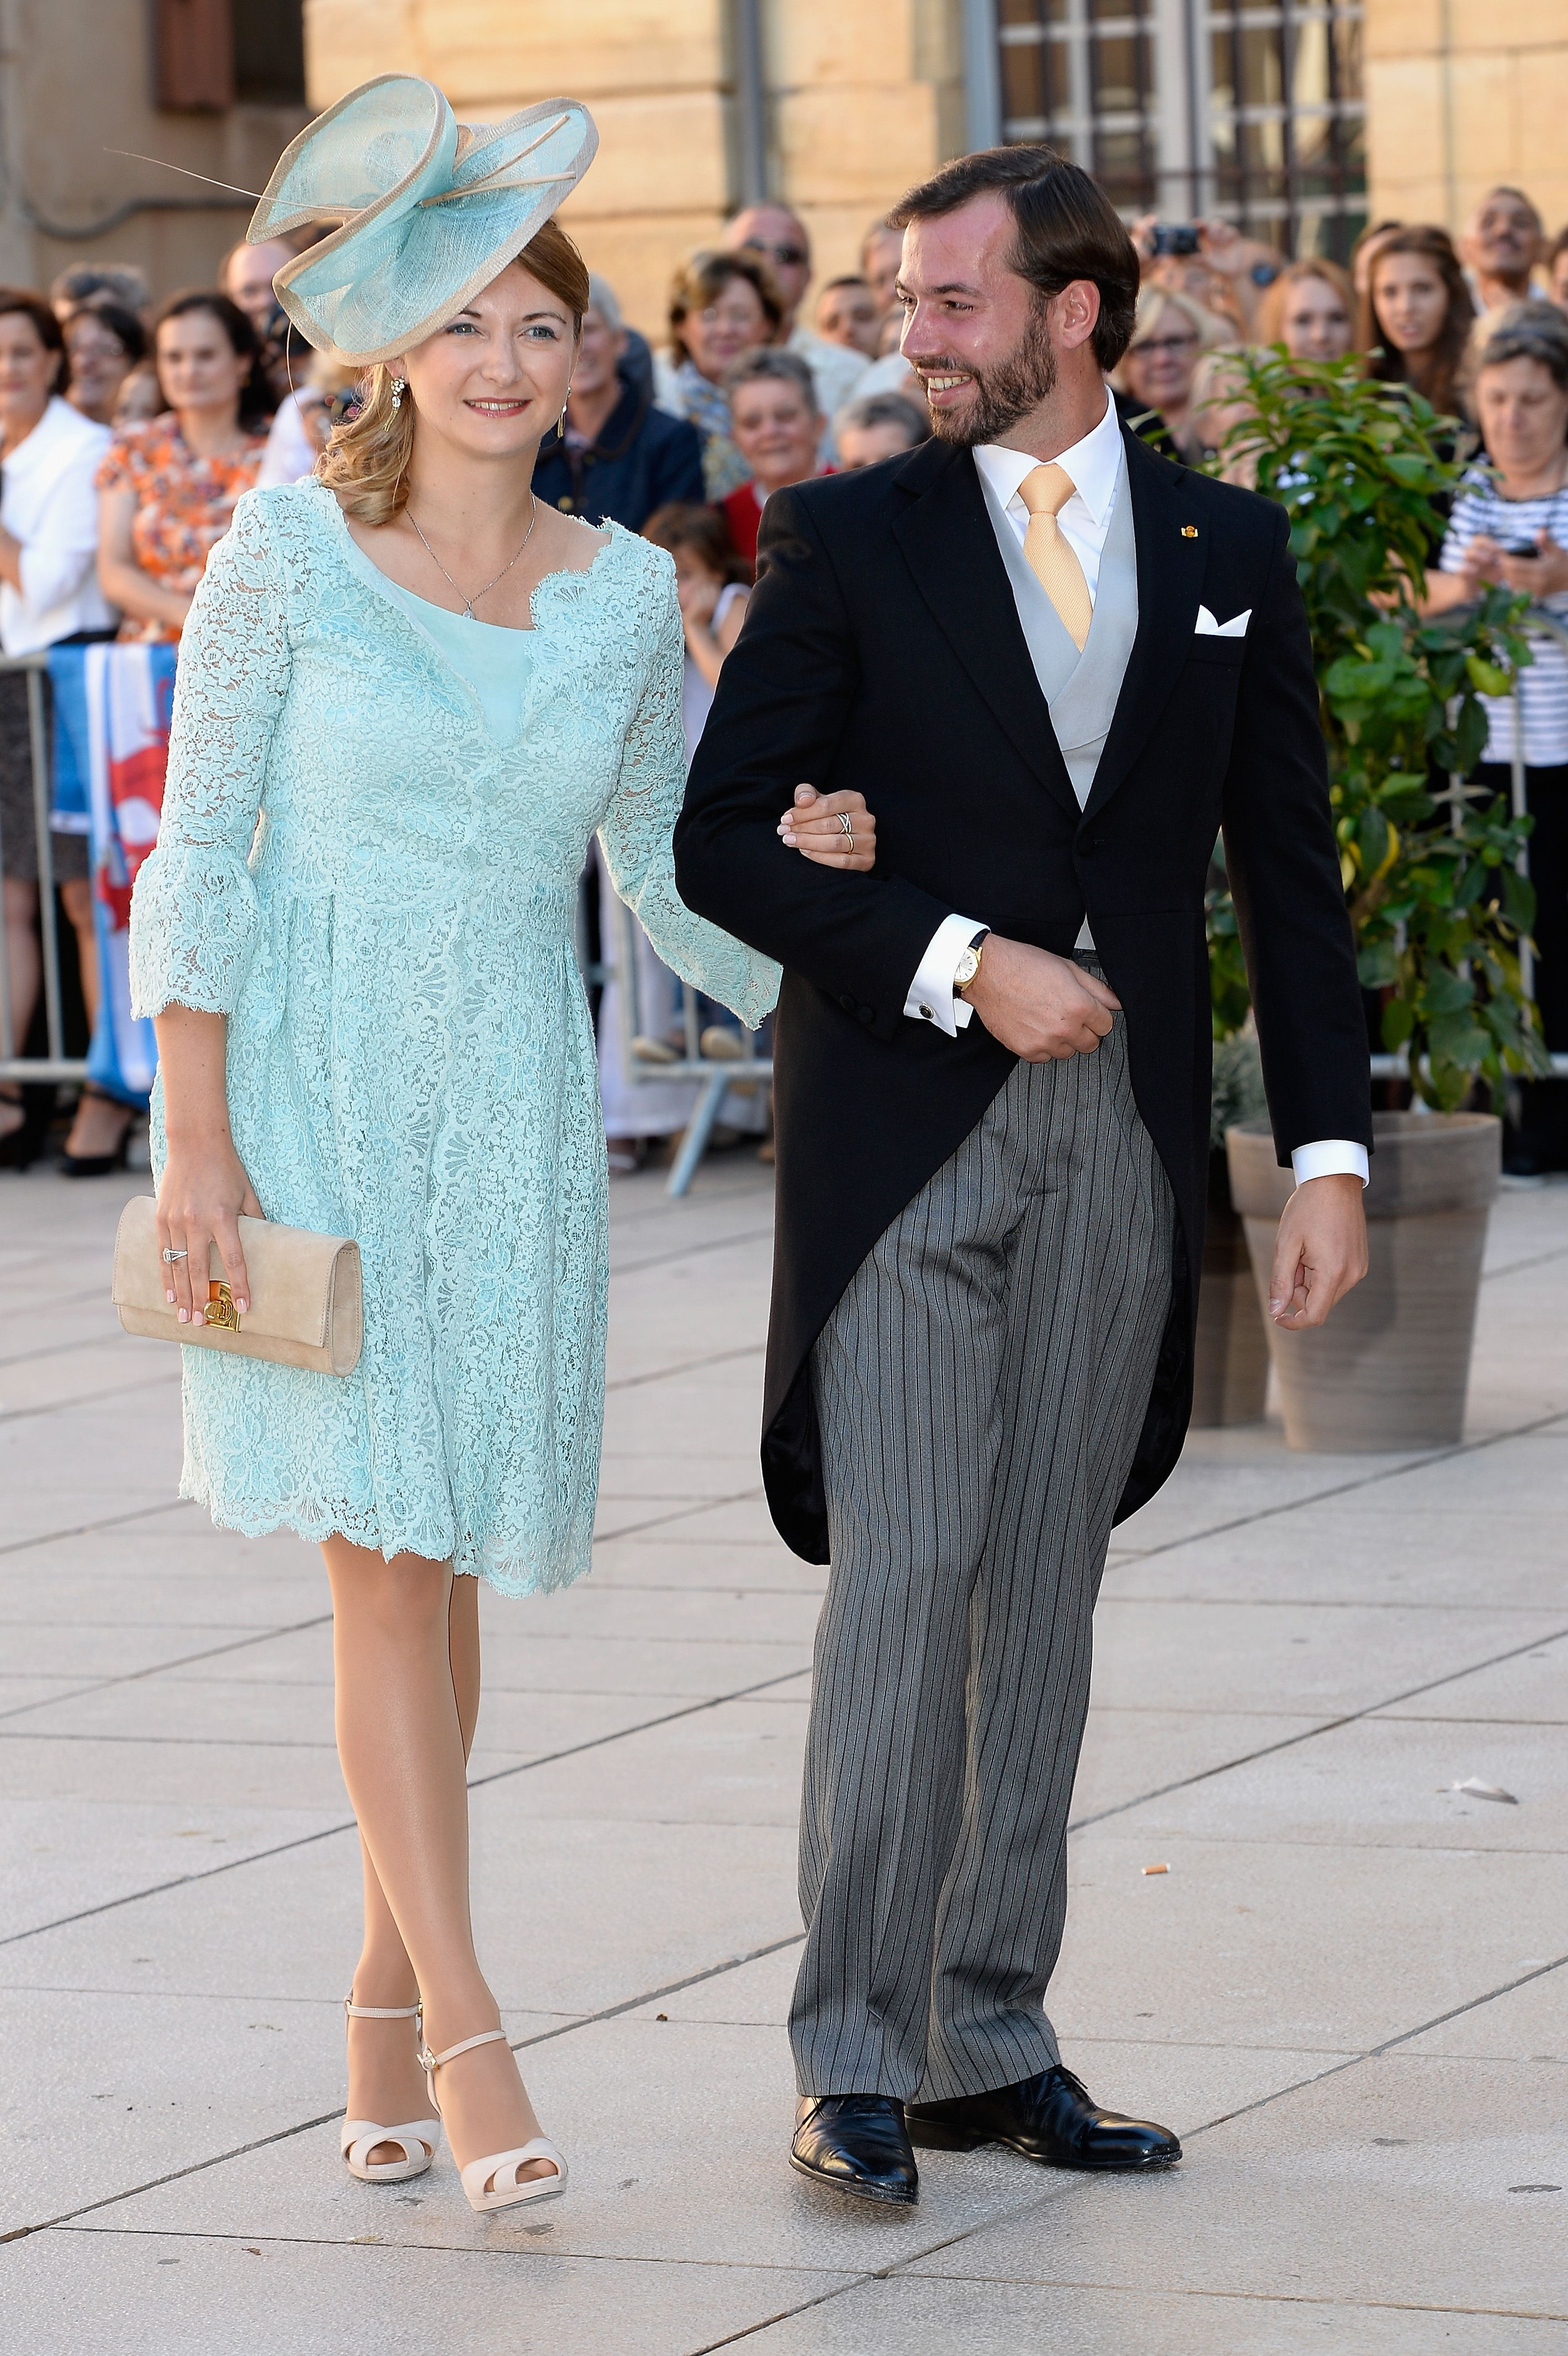 Prince-Felix-Claire-Lademacher-Royal-Wedding-France-09212013-2.jpg ...